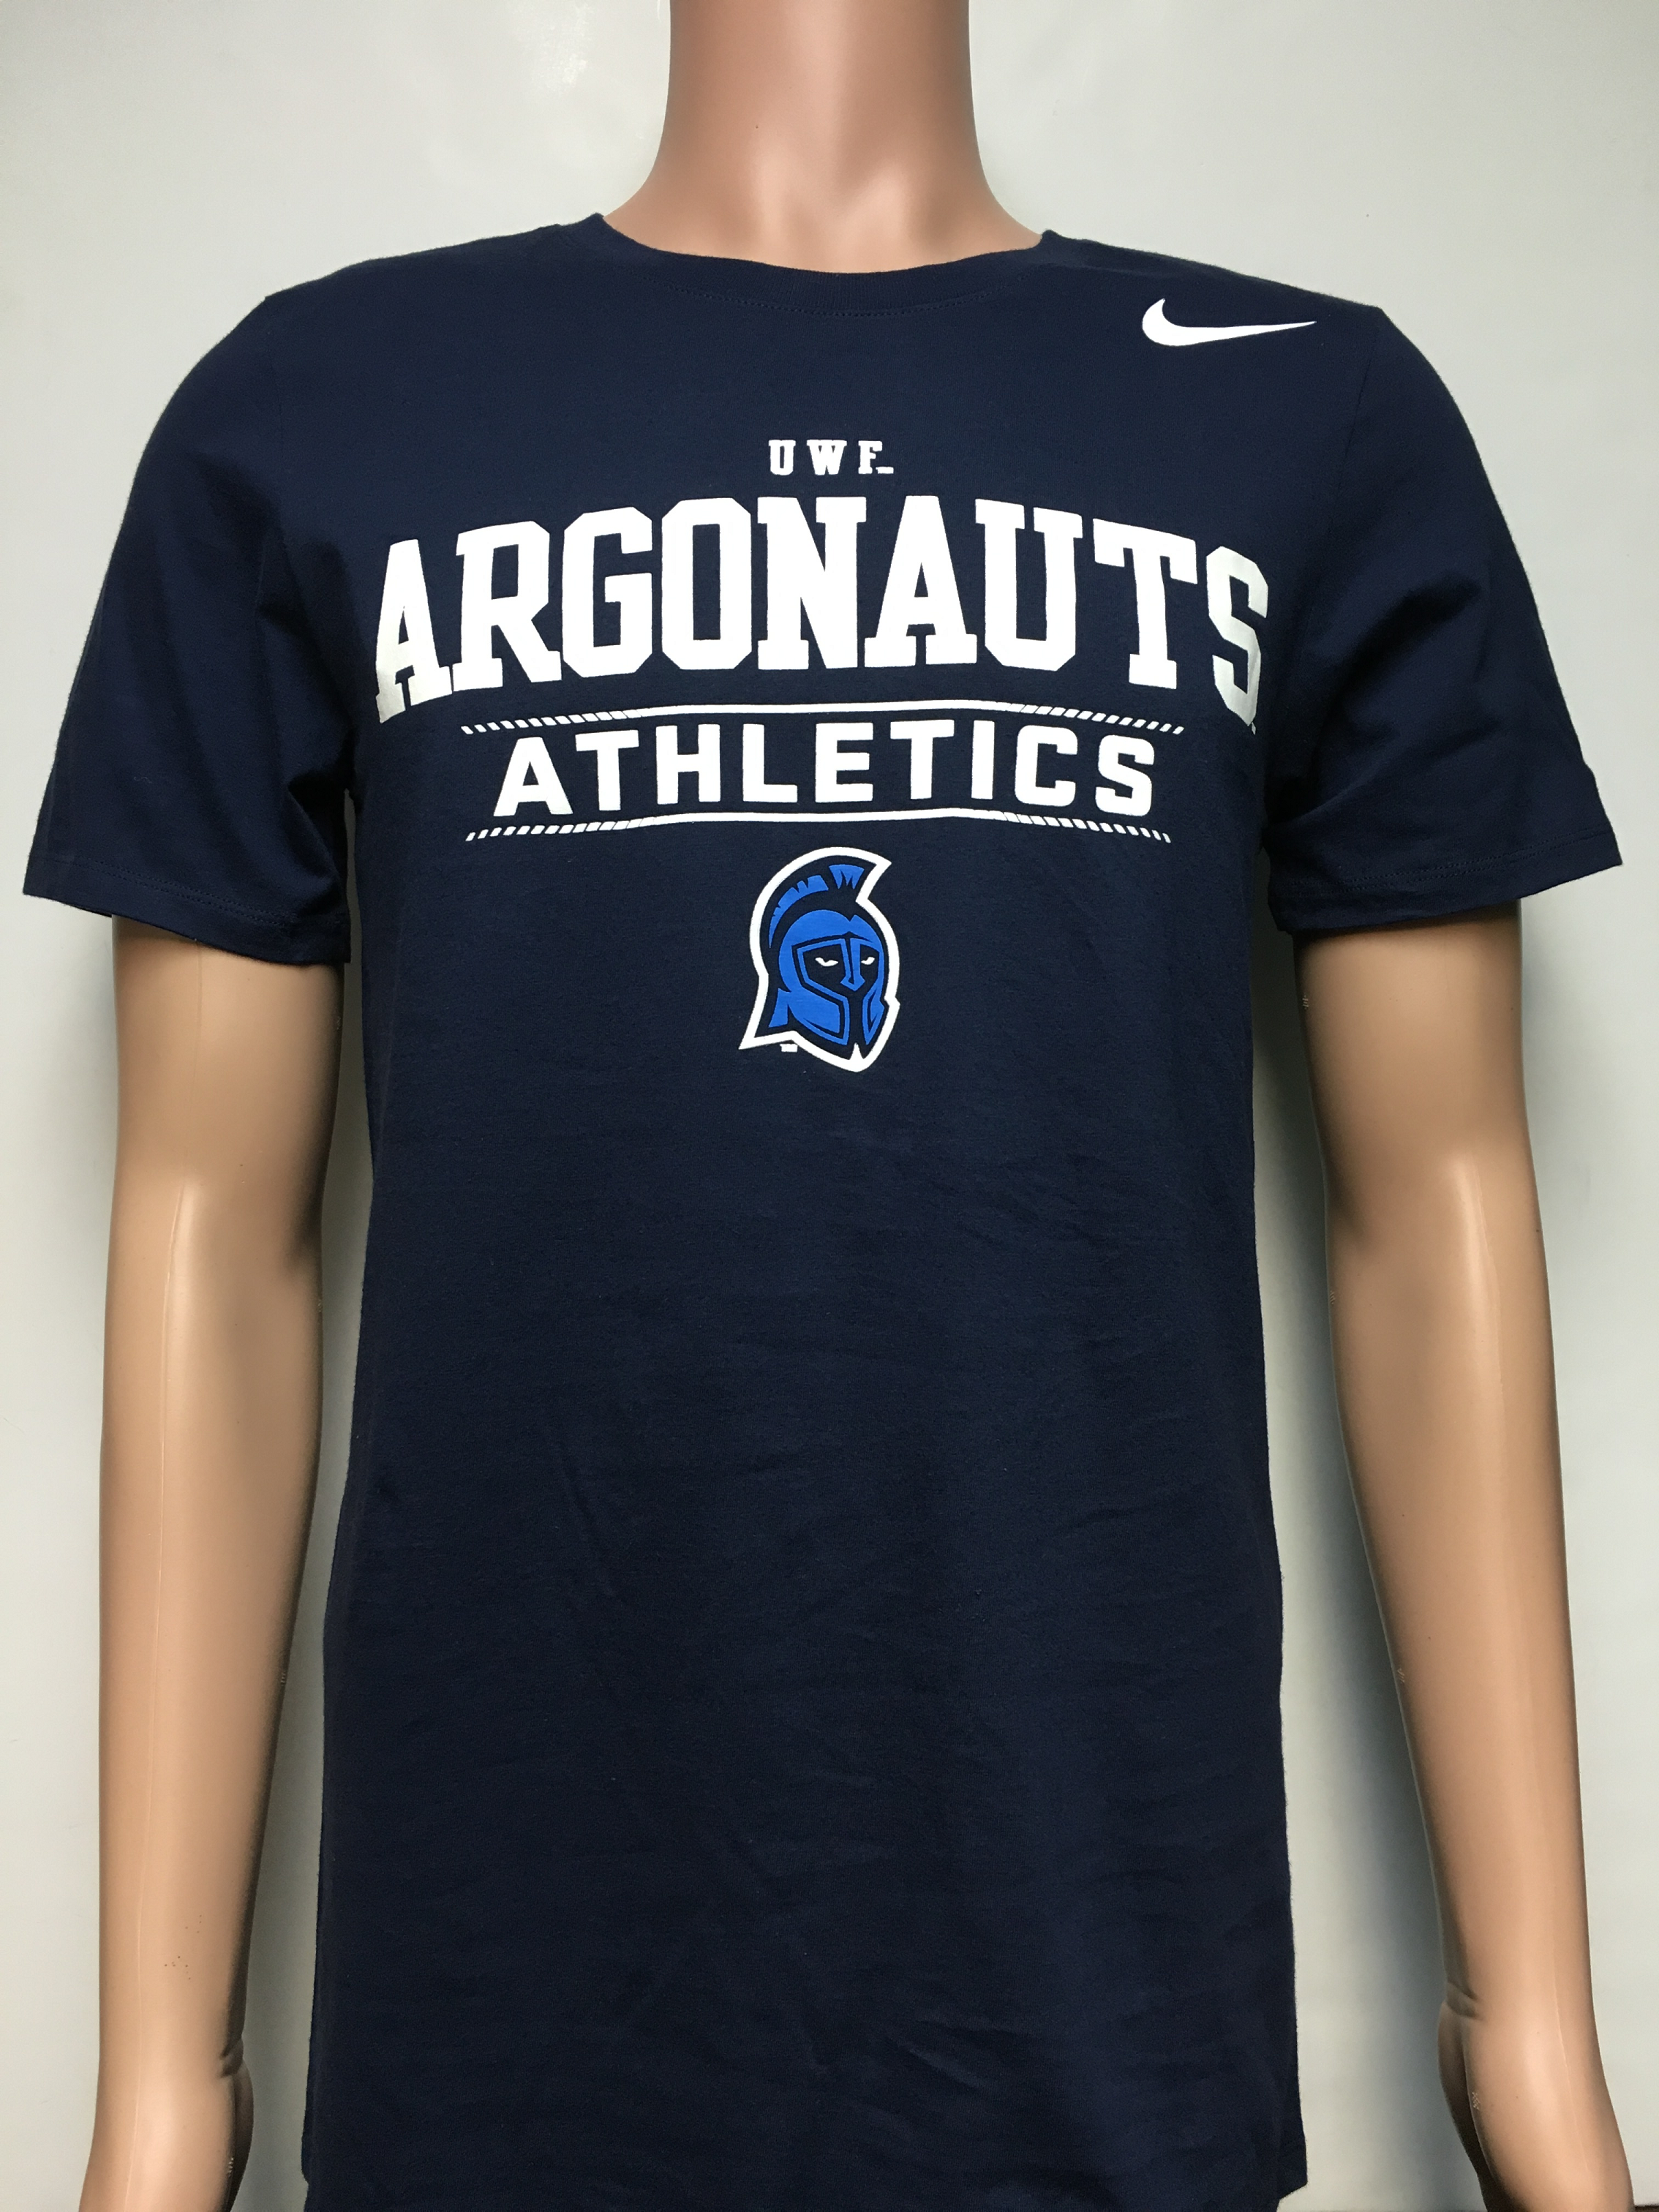 UWF ARGONAUTS ATHLETIC TEE